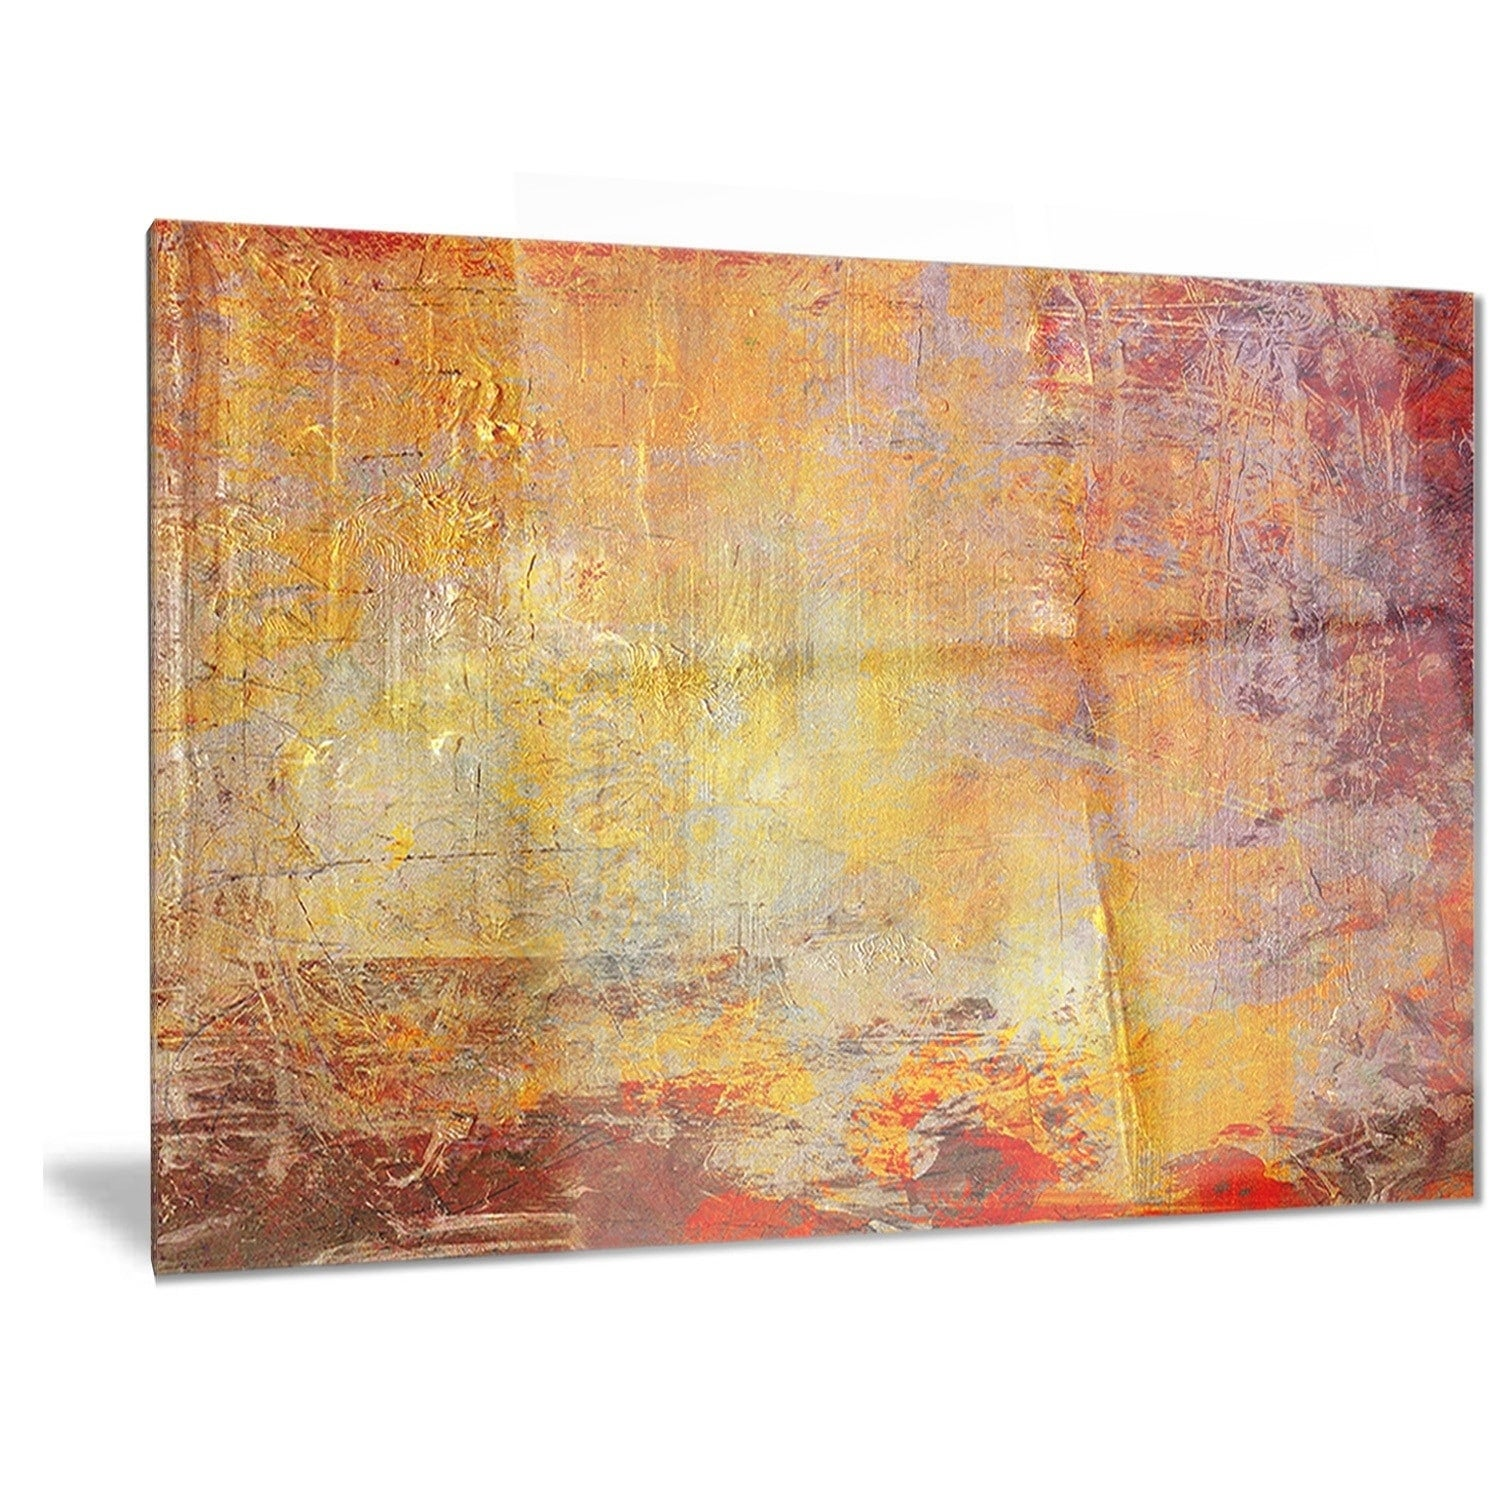 Famous Abstract Metal Wall Decor Image Collection - The Wall Art ...